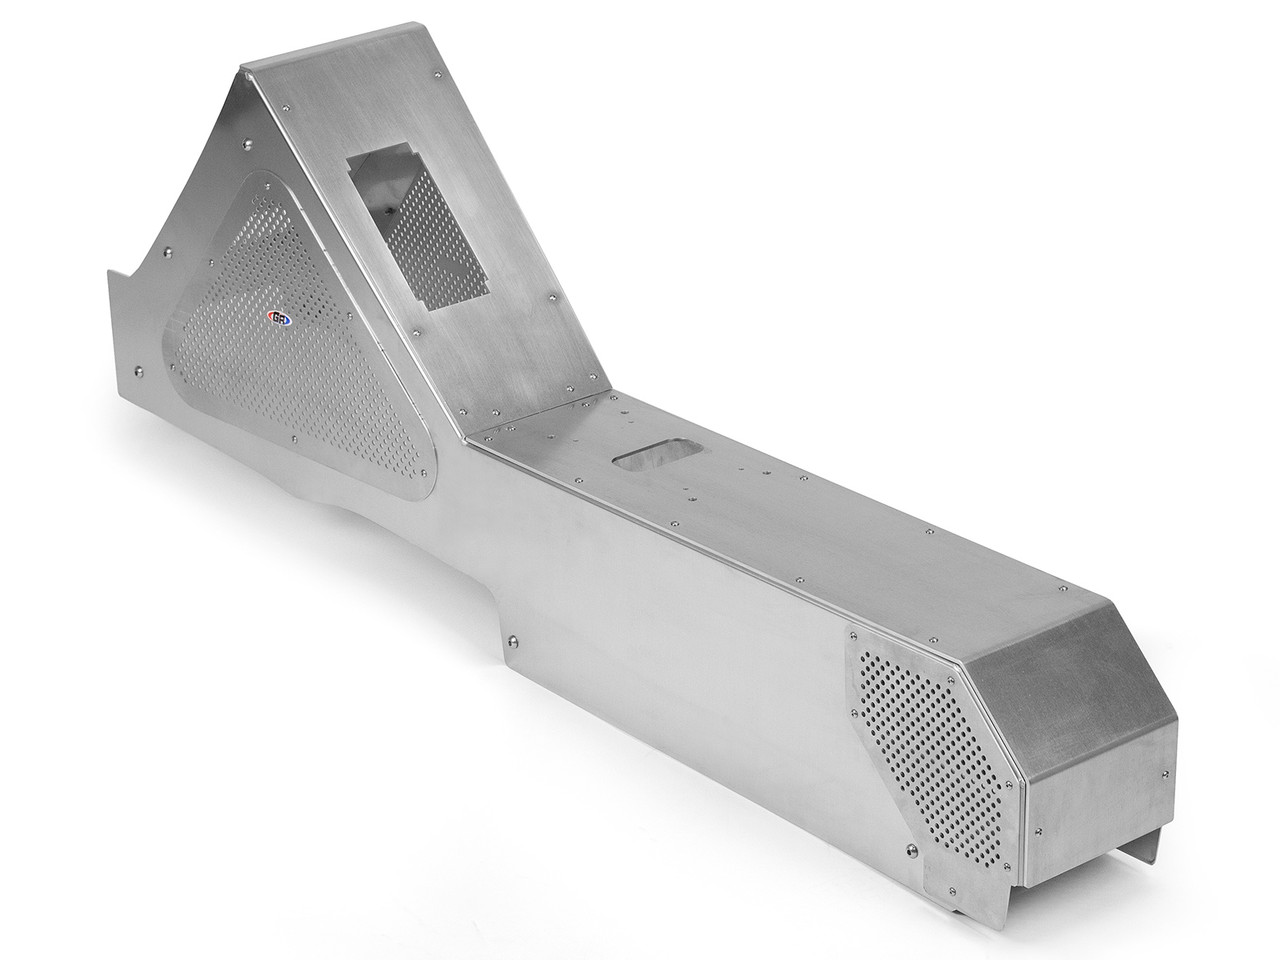 Narrow Console with Standard Cut Outs, for shifters only